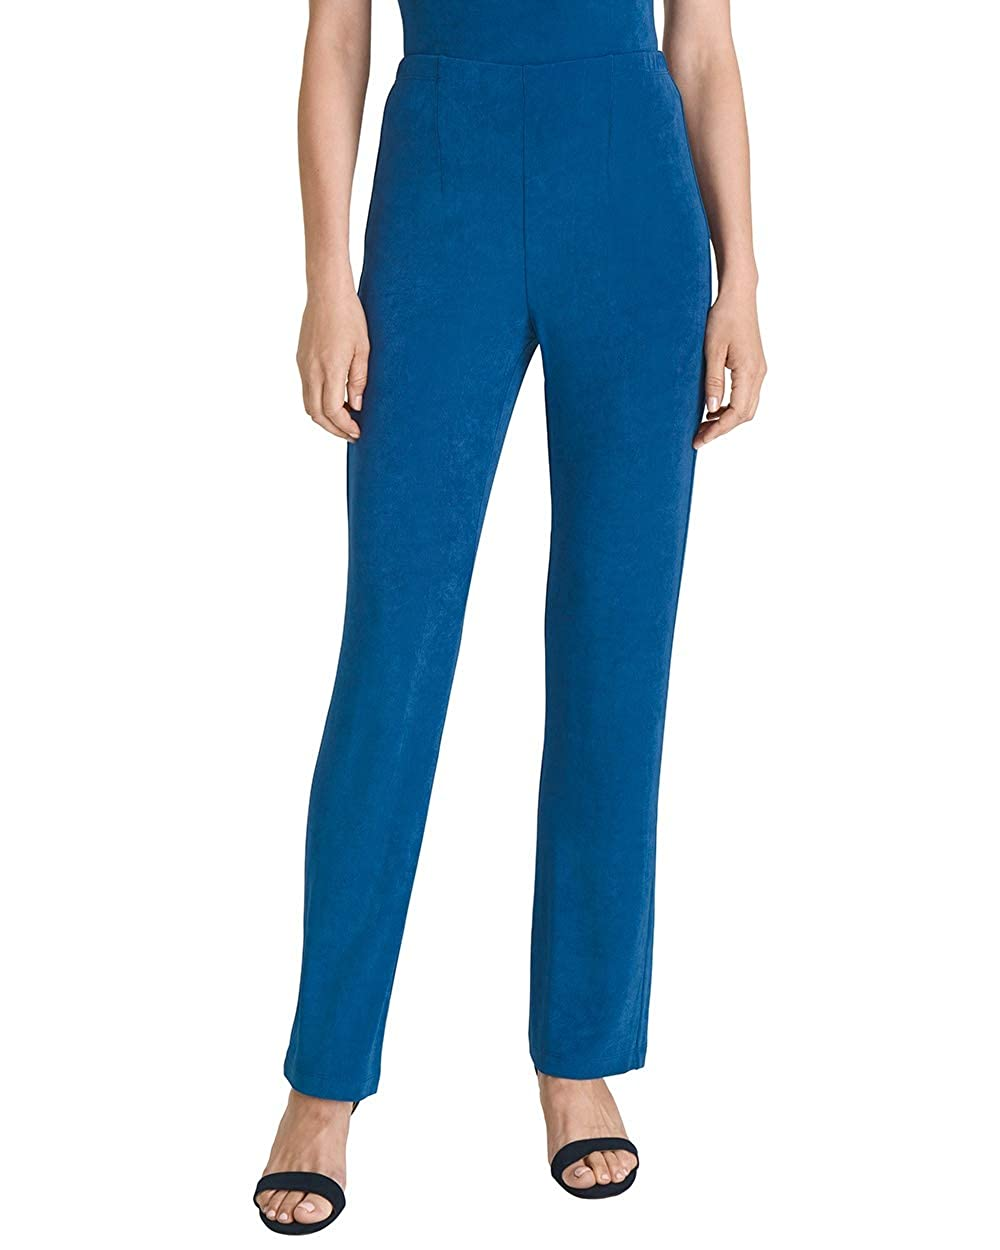 60s – 70s Pants, Jeans, Hippie, Bell Bottoms, Jumpsuits Chicos Womens Travelers Classic No Tummy Wrinkle Resistant Pull On Straight Leg Pants $49.99 AT vintagedancer.com